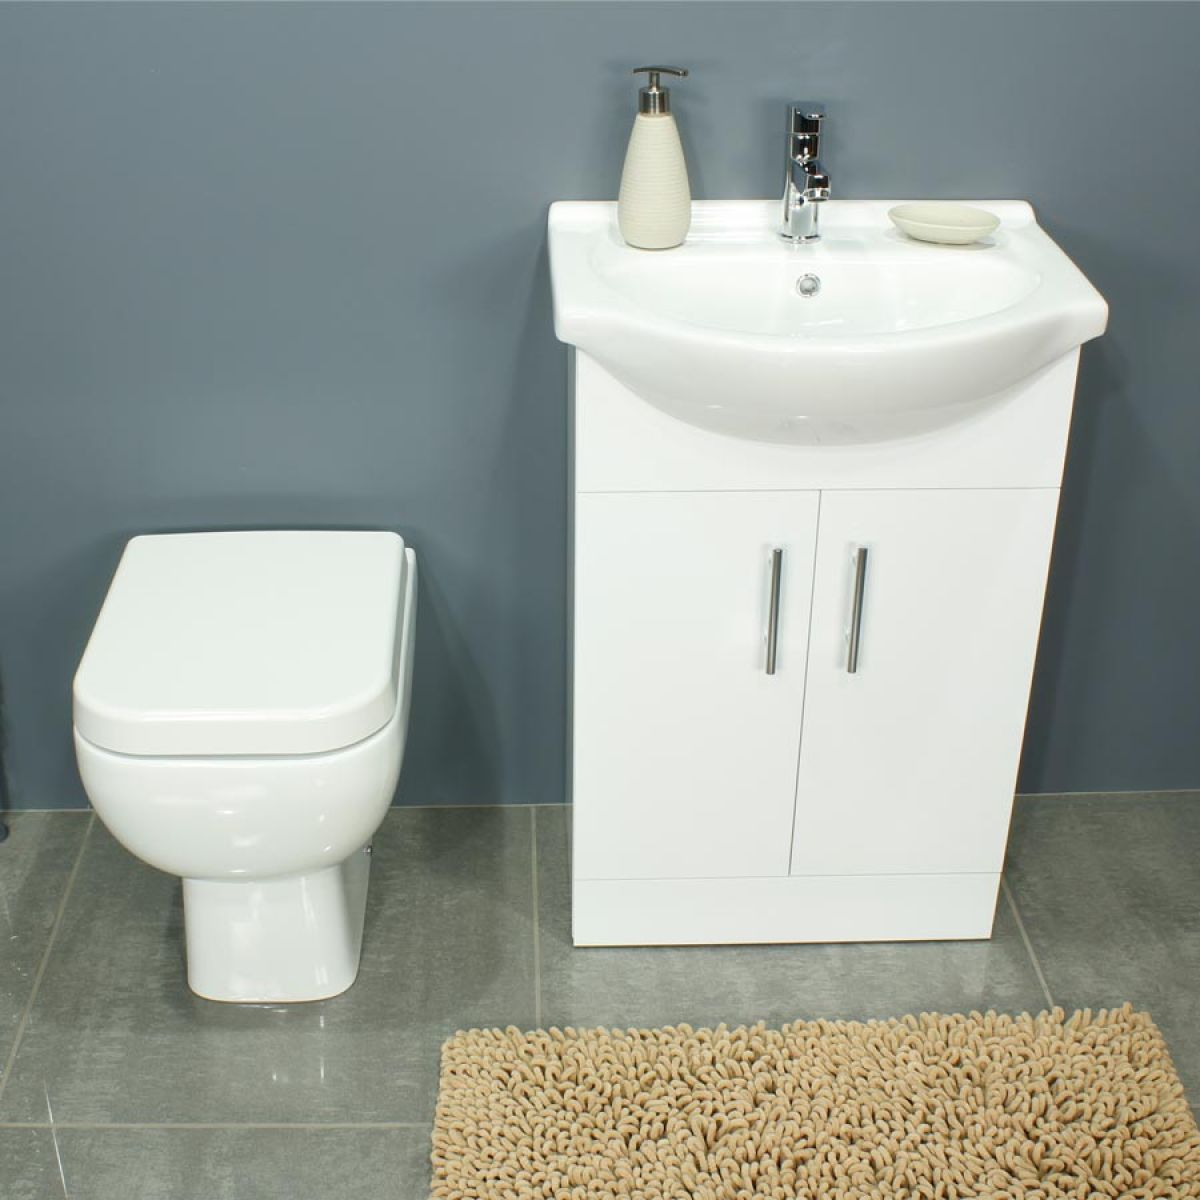 RAK Series 600 Back To Wall Toilet and 550 Series Gloss White Vanity Unit Front